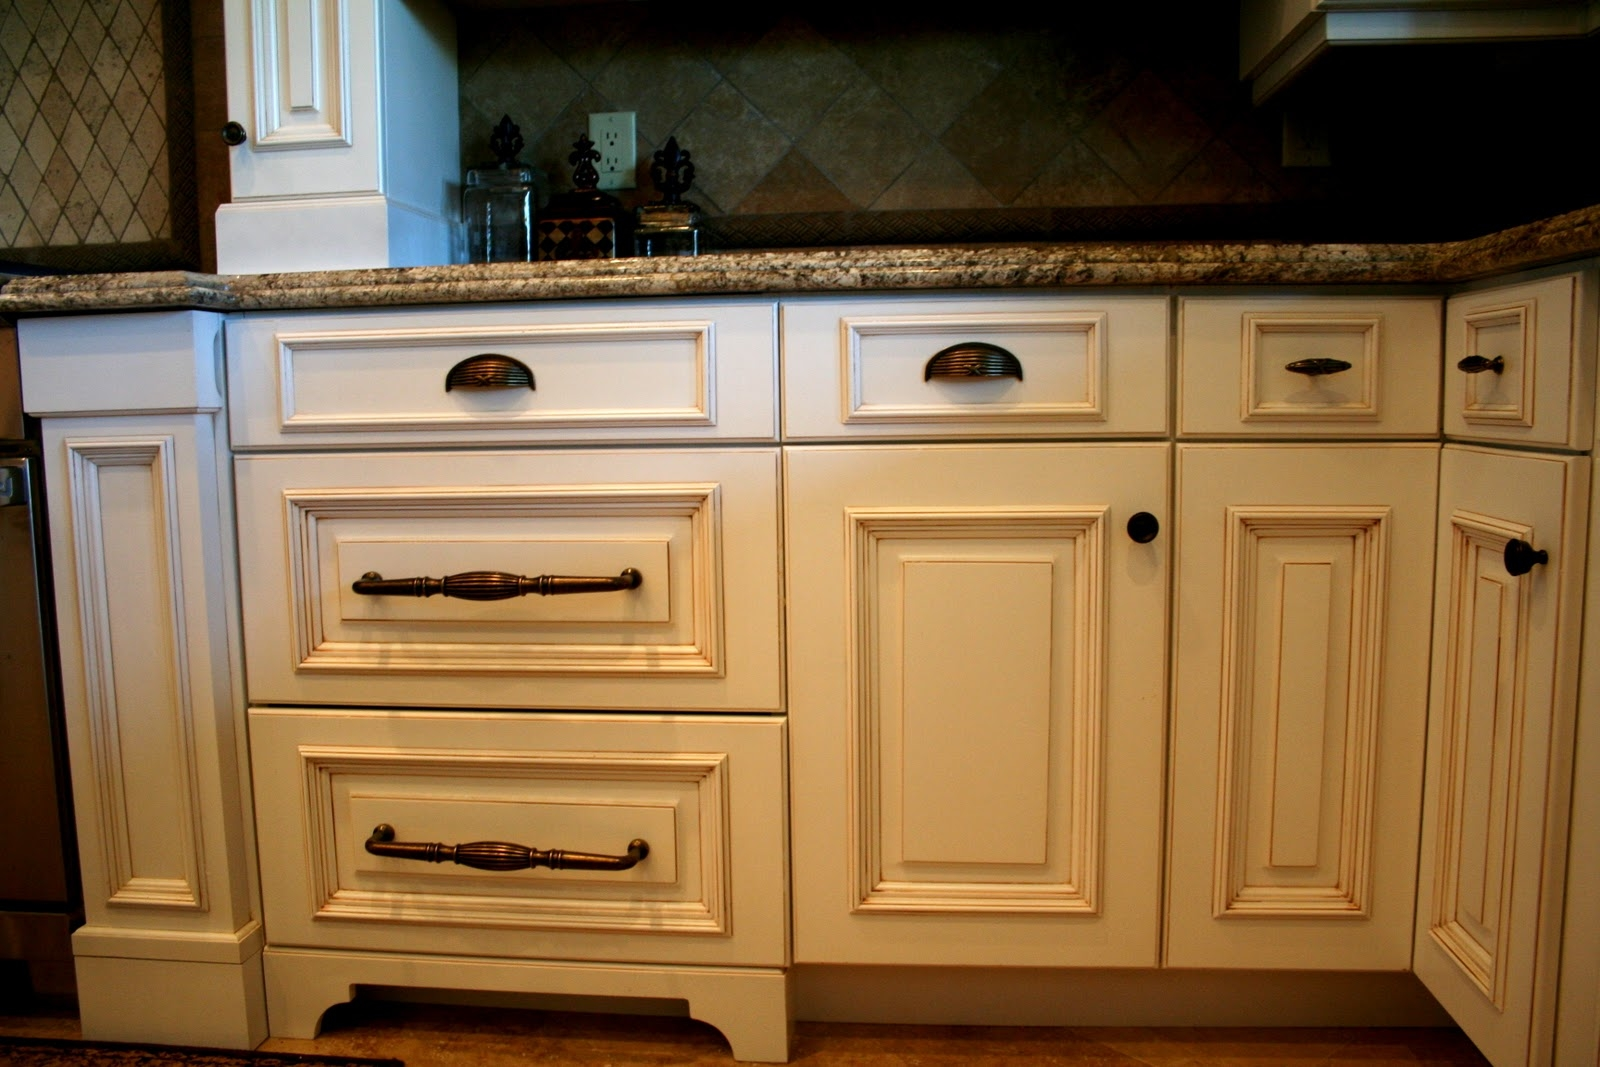 Mixing Knobs And Handles On Kitchen Cabinets